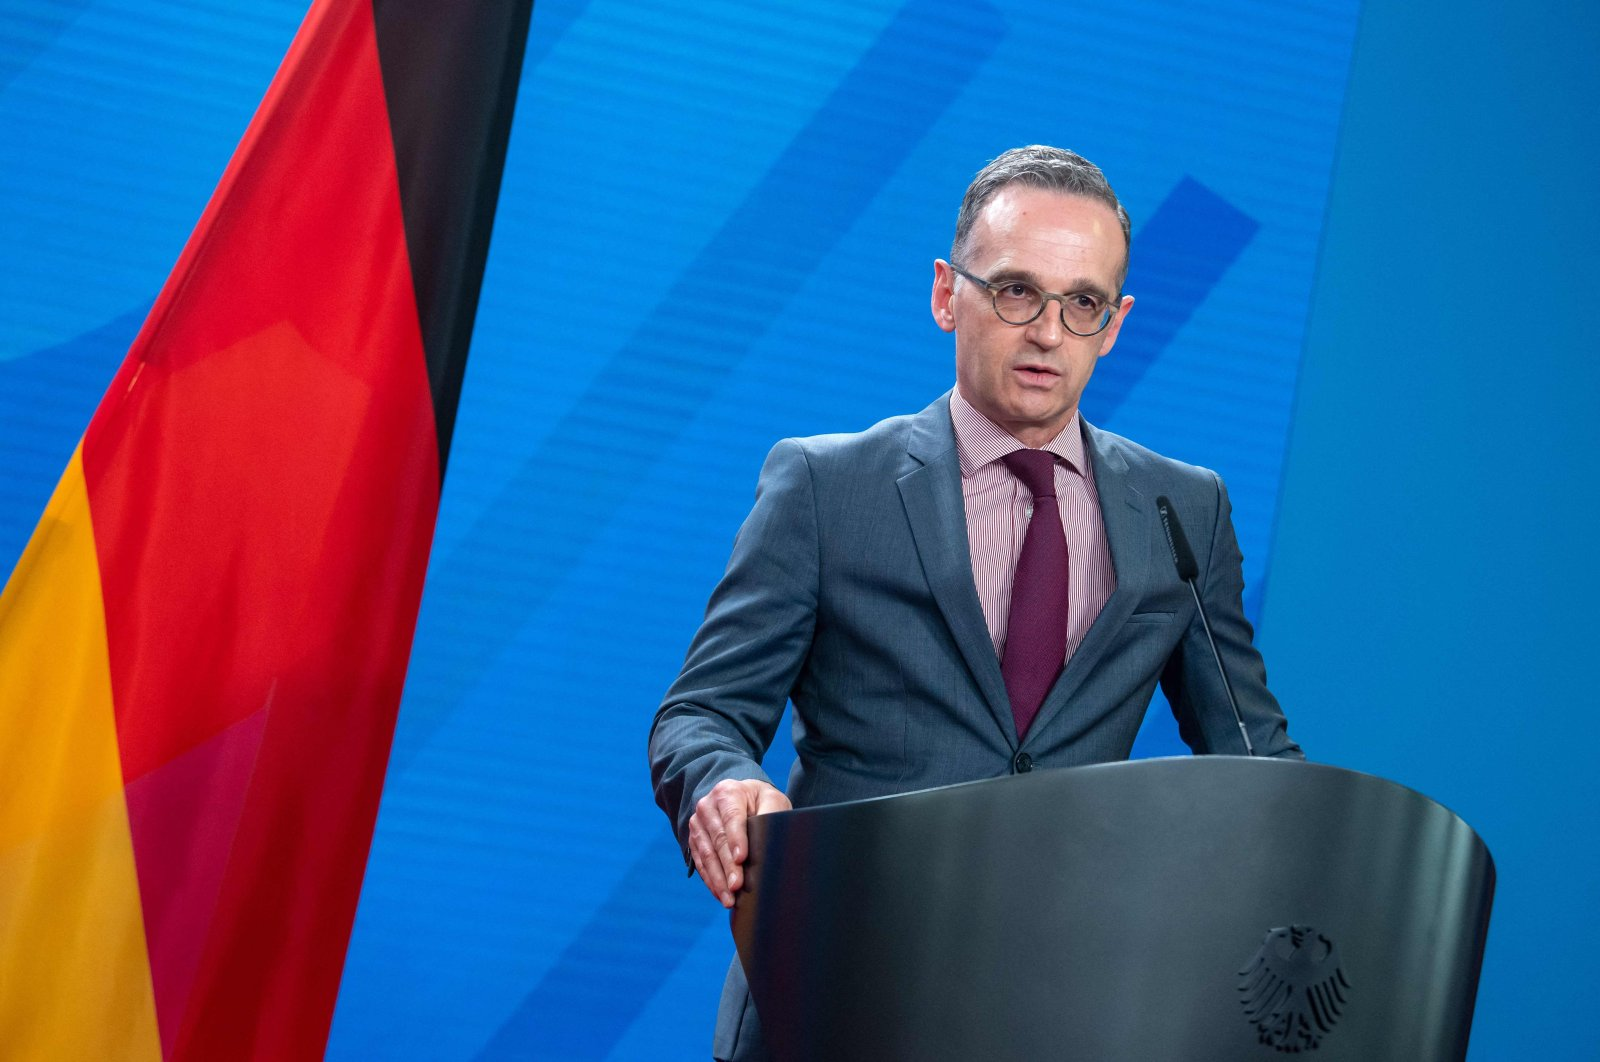 German Foreign Minister Heiko Maas attends a joint press conference with the Czech foreign minister ahead of a meeting at the Foreign Ministry, Berlin, Germany, May 25, 2021. (AFP Photo)